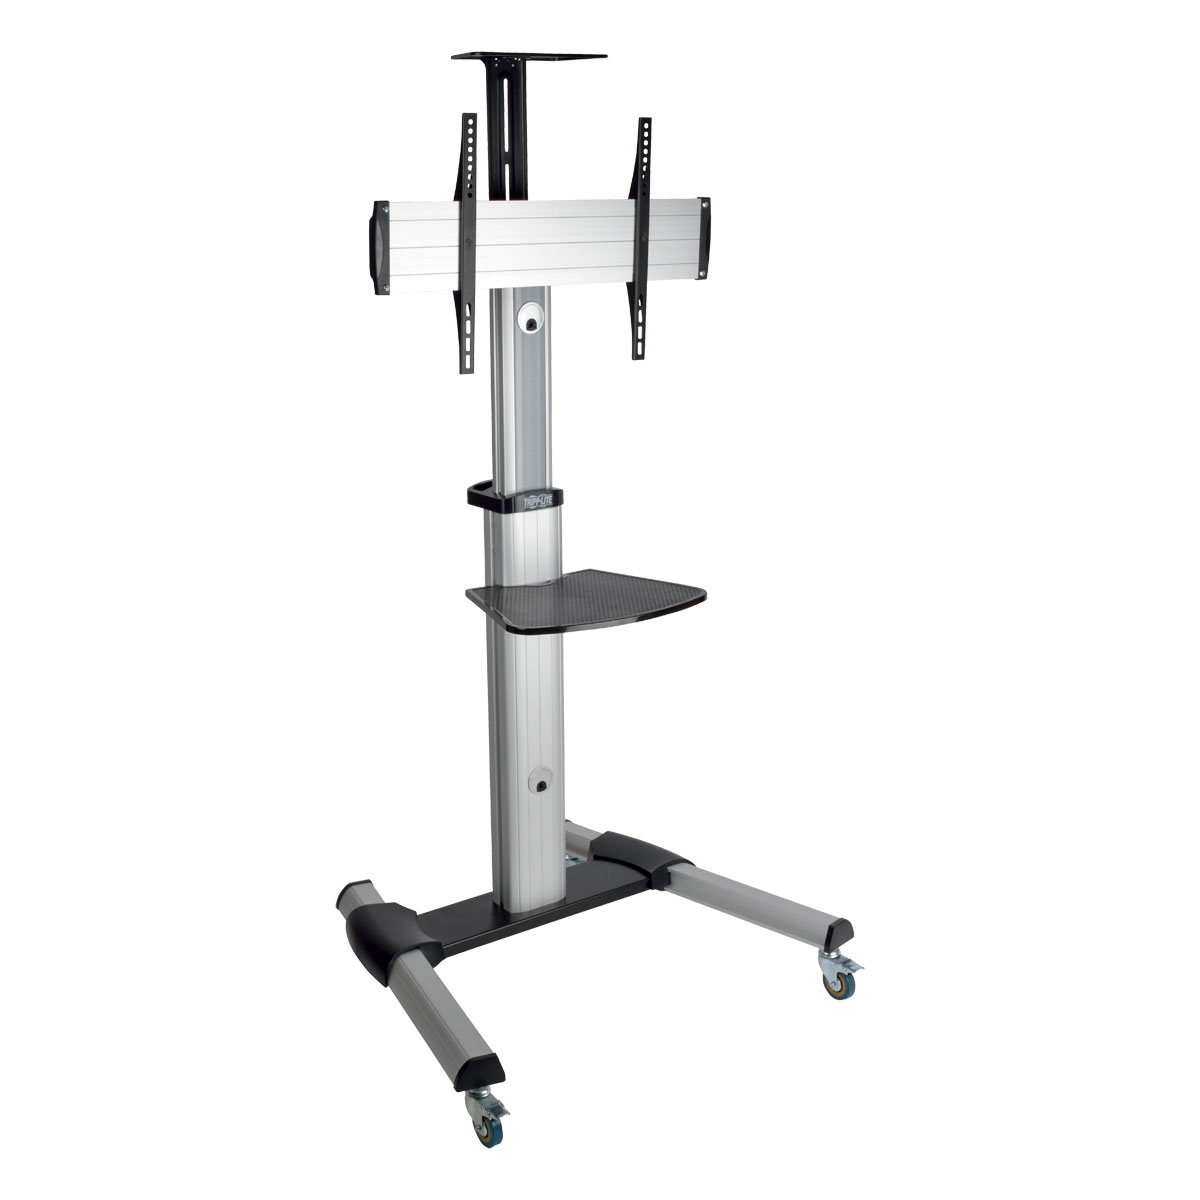 Mobile TV Floor Stand Cart Height-Adjustable LCD 32-70 inch Display - Cart for LCD display - aluminum steel - black silver - screen size: 32 inch -70 inch - floor-standing